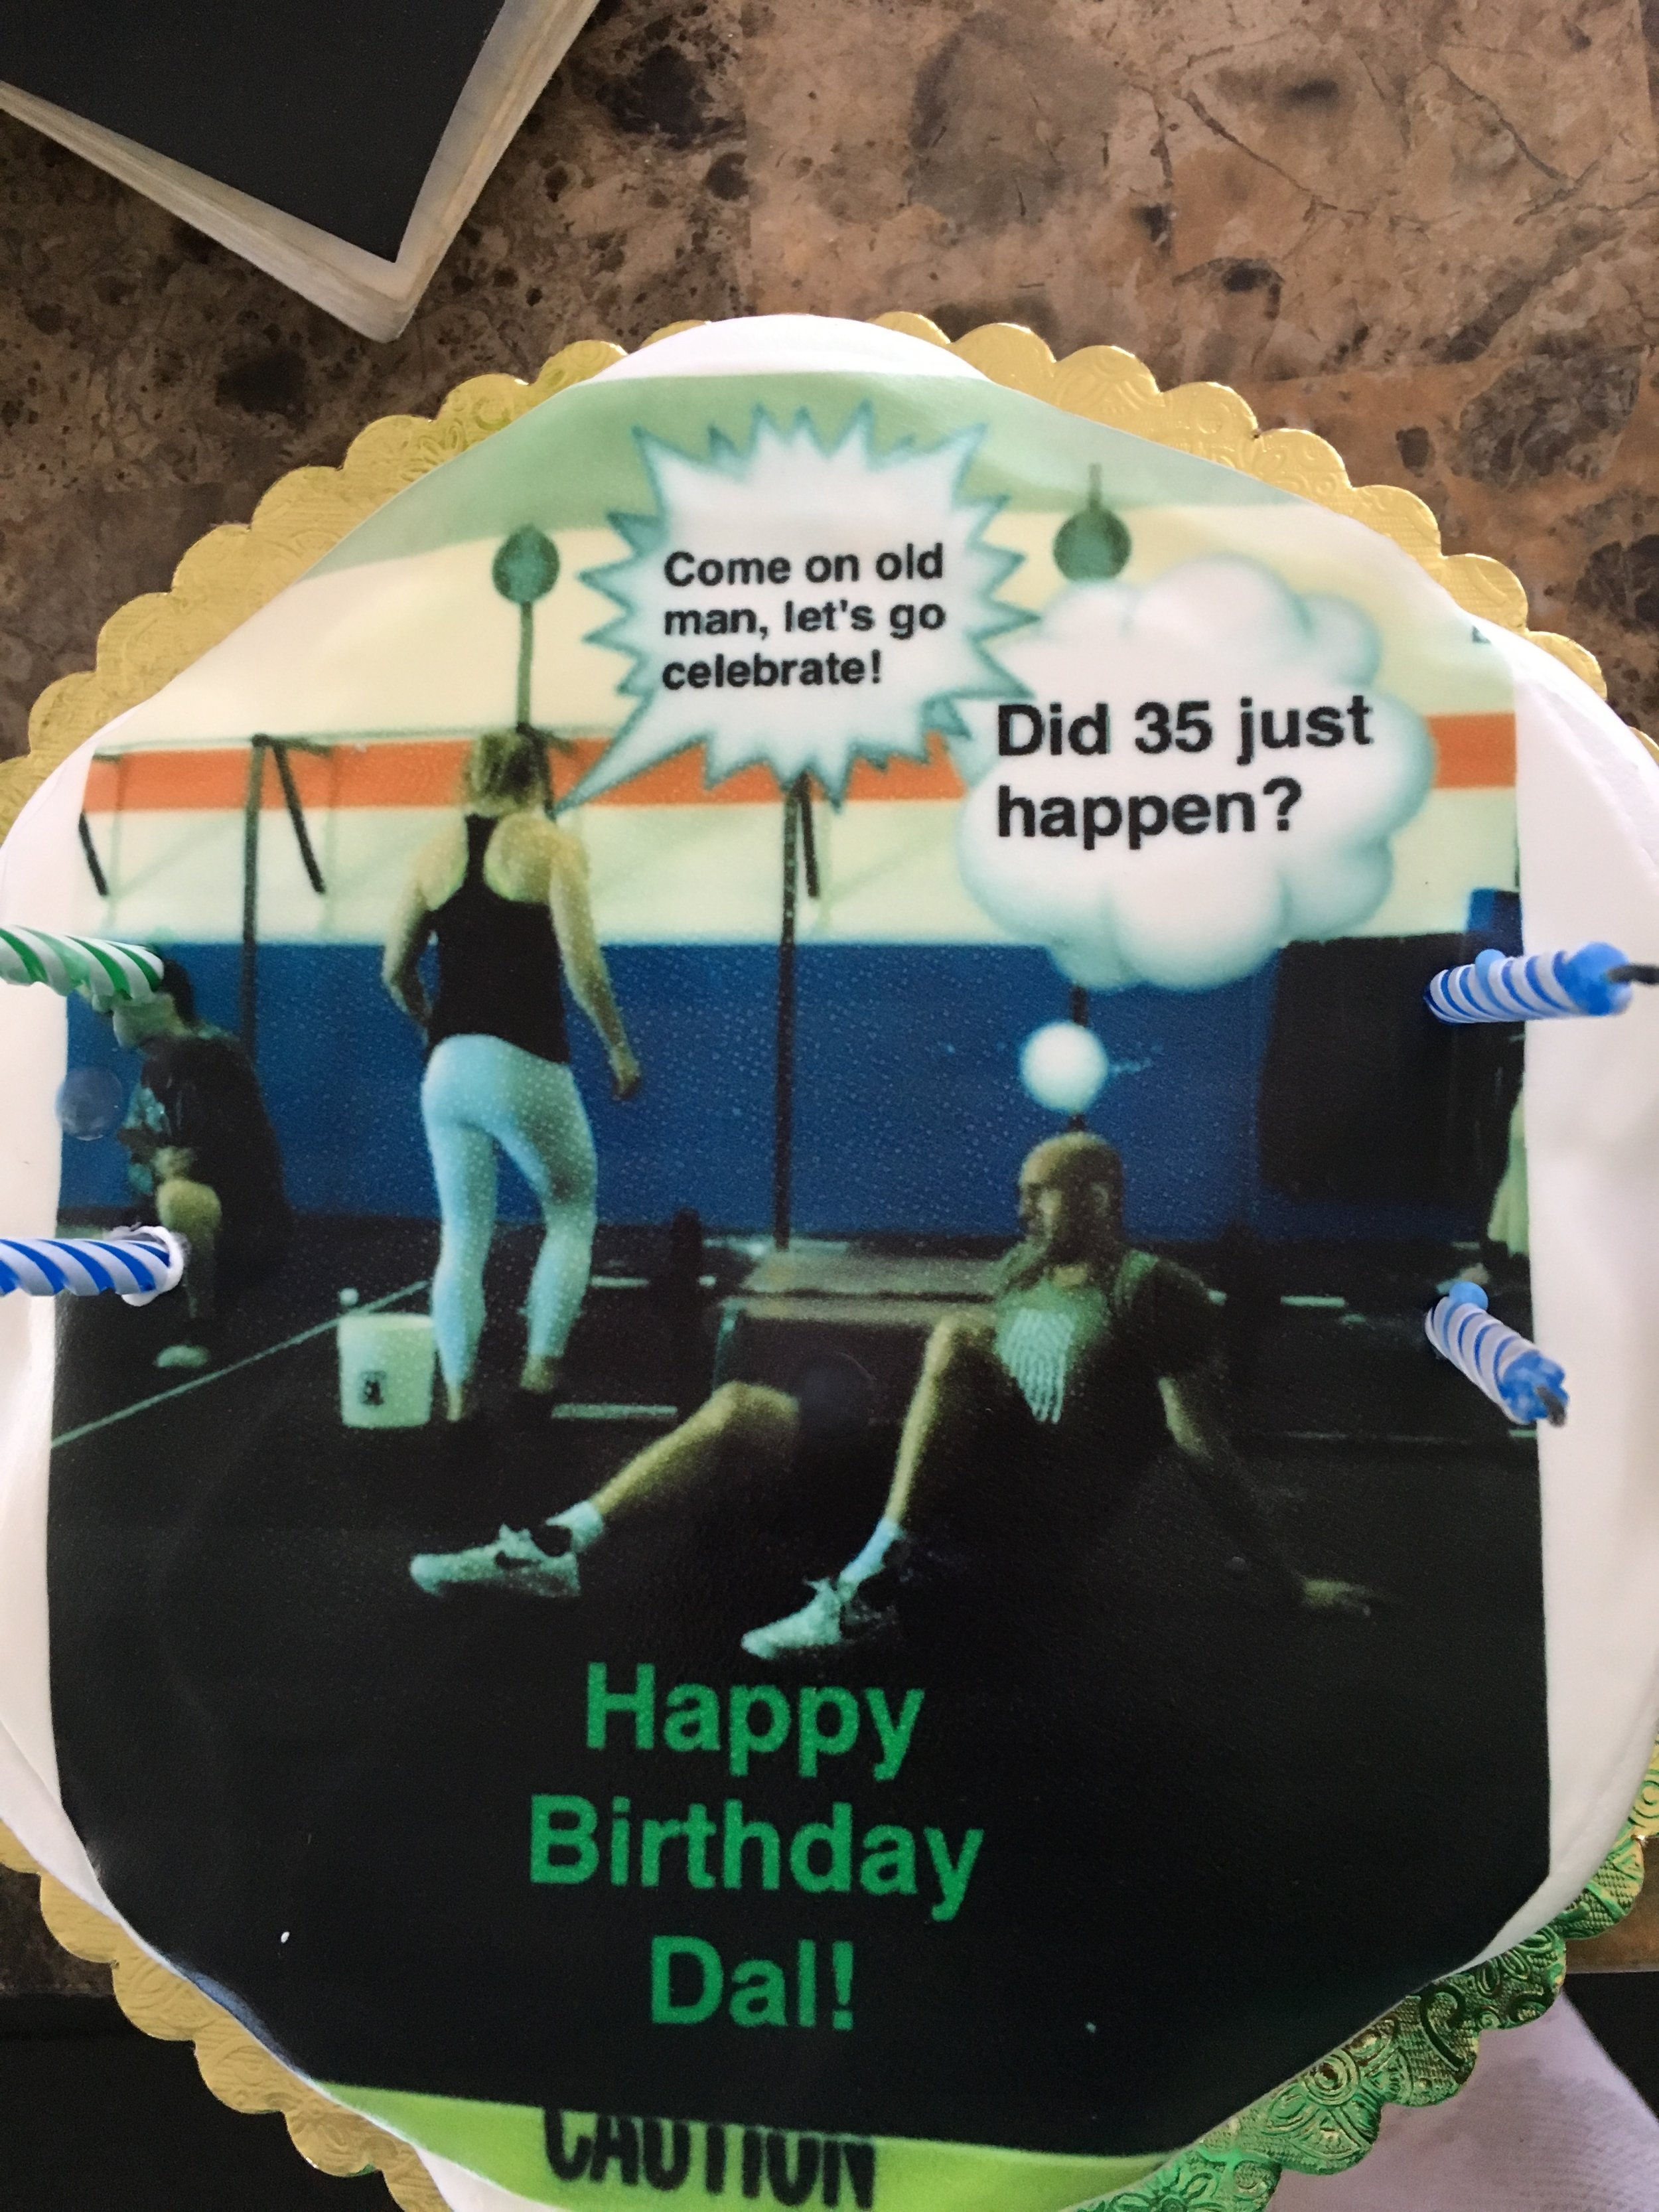 Elite Bakery with a great meme